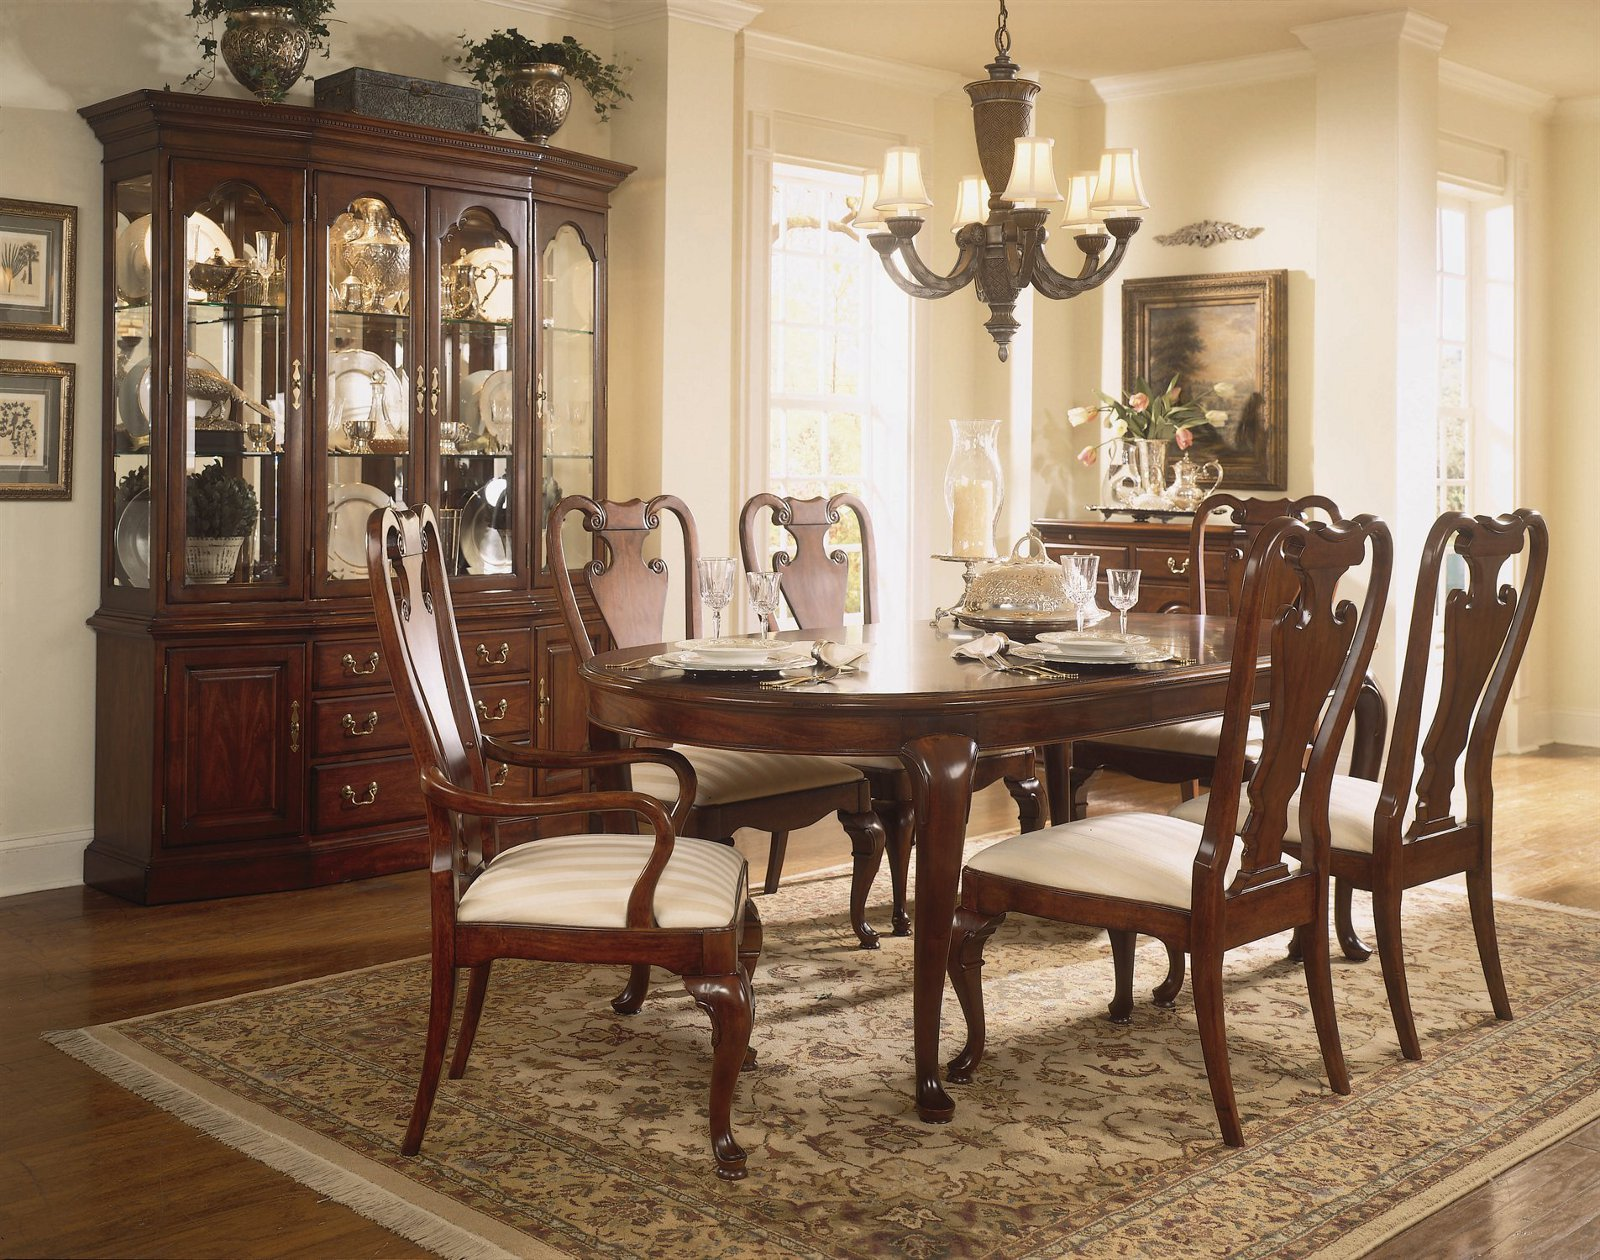 Dining Room Furniture Images American Drew Cherry Grove 7 Pc Oval Leg Dining Set By